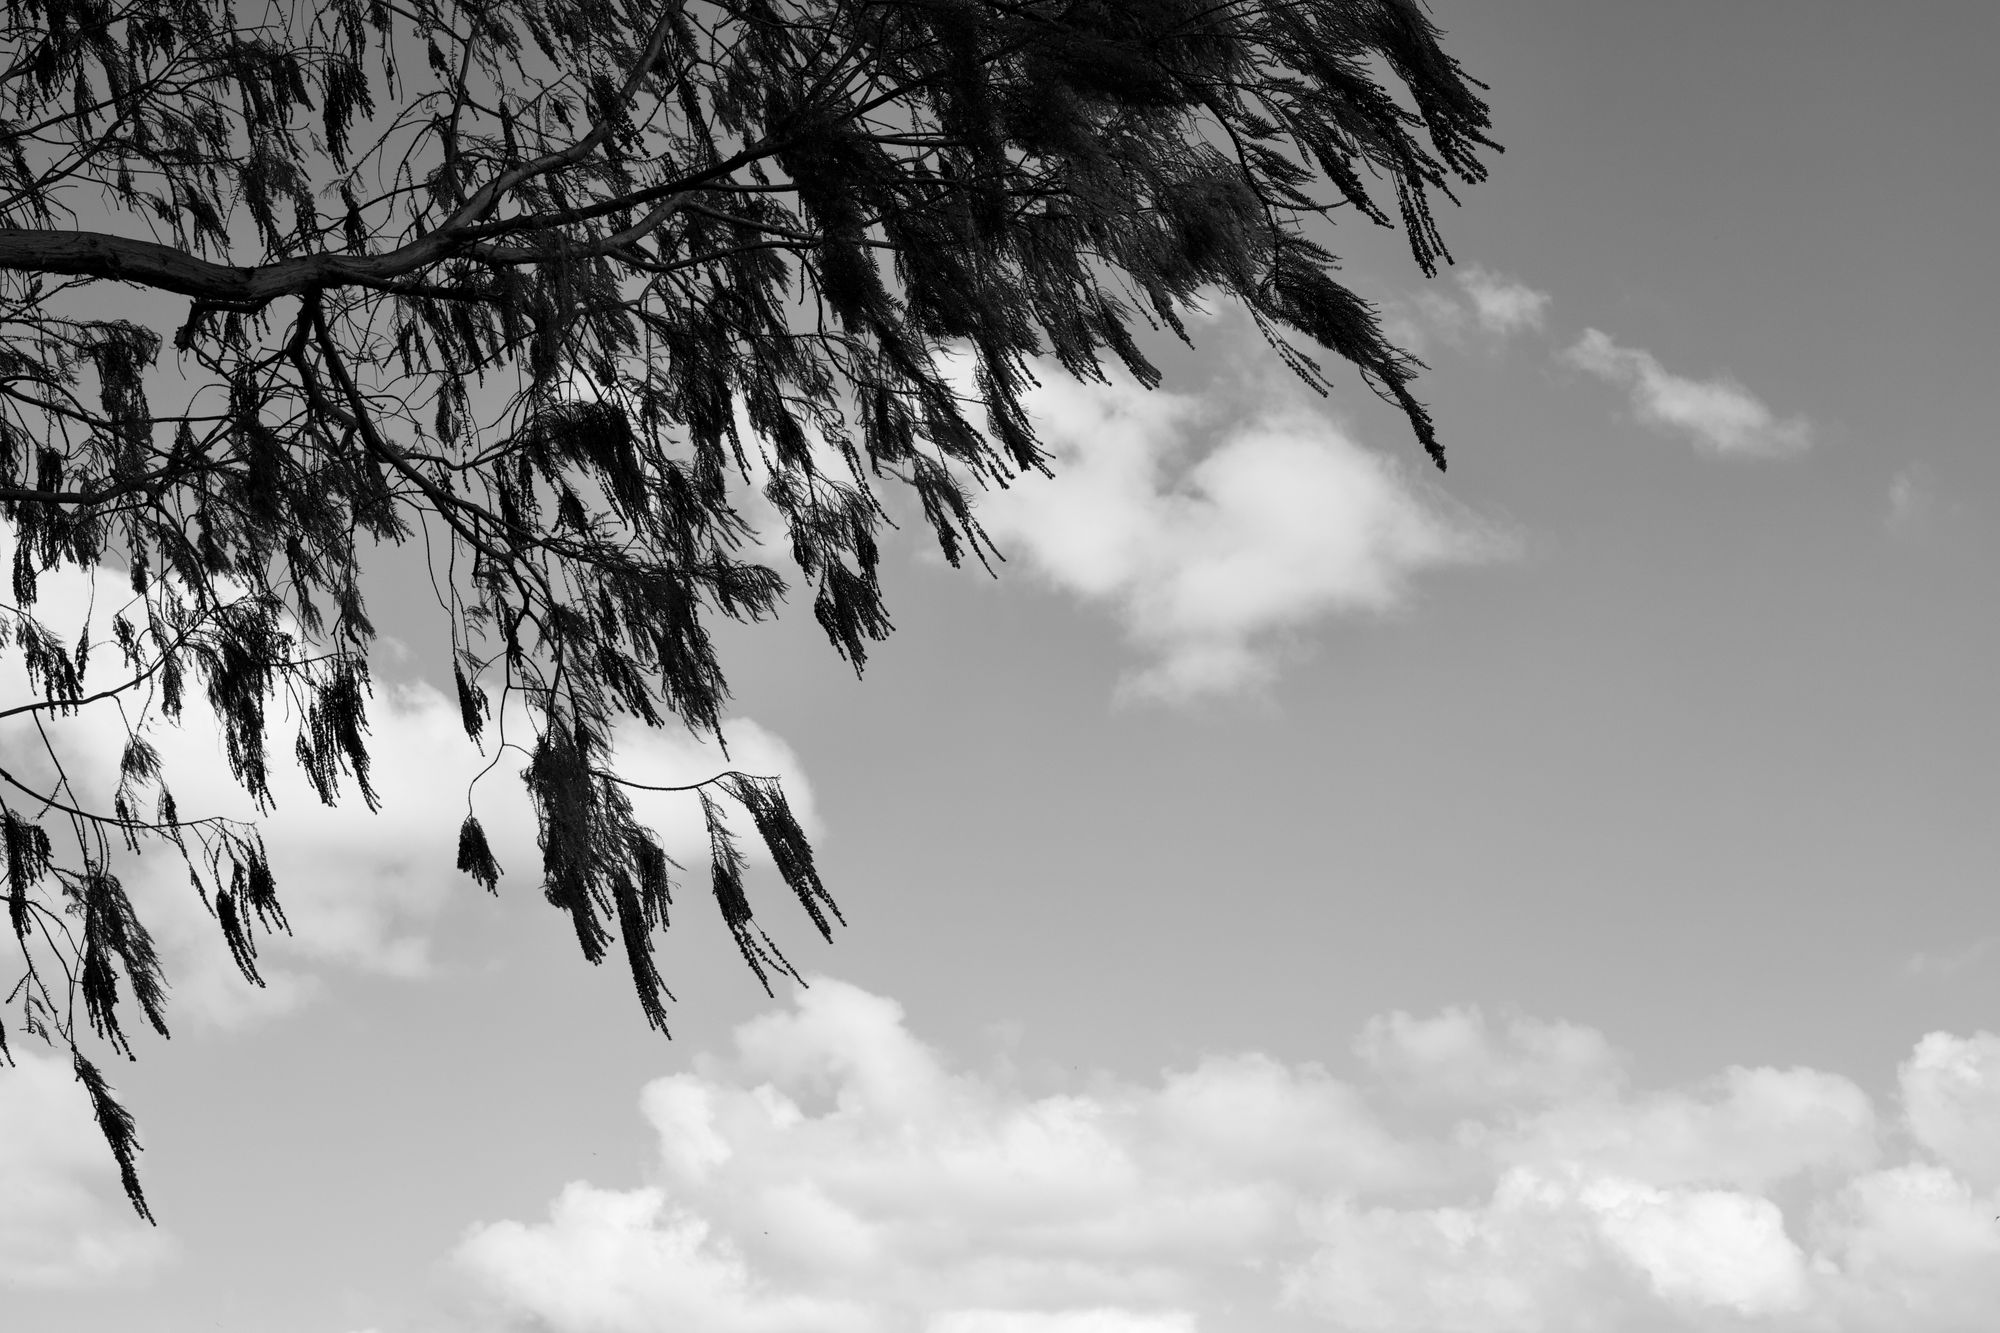 Cypress branch in front of a cloudy sky